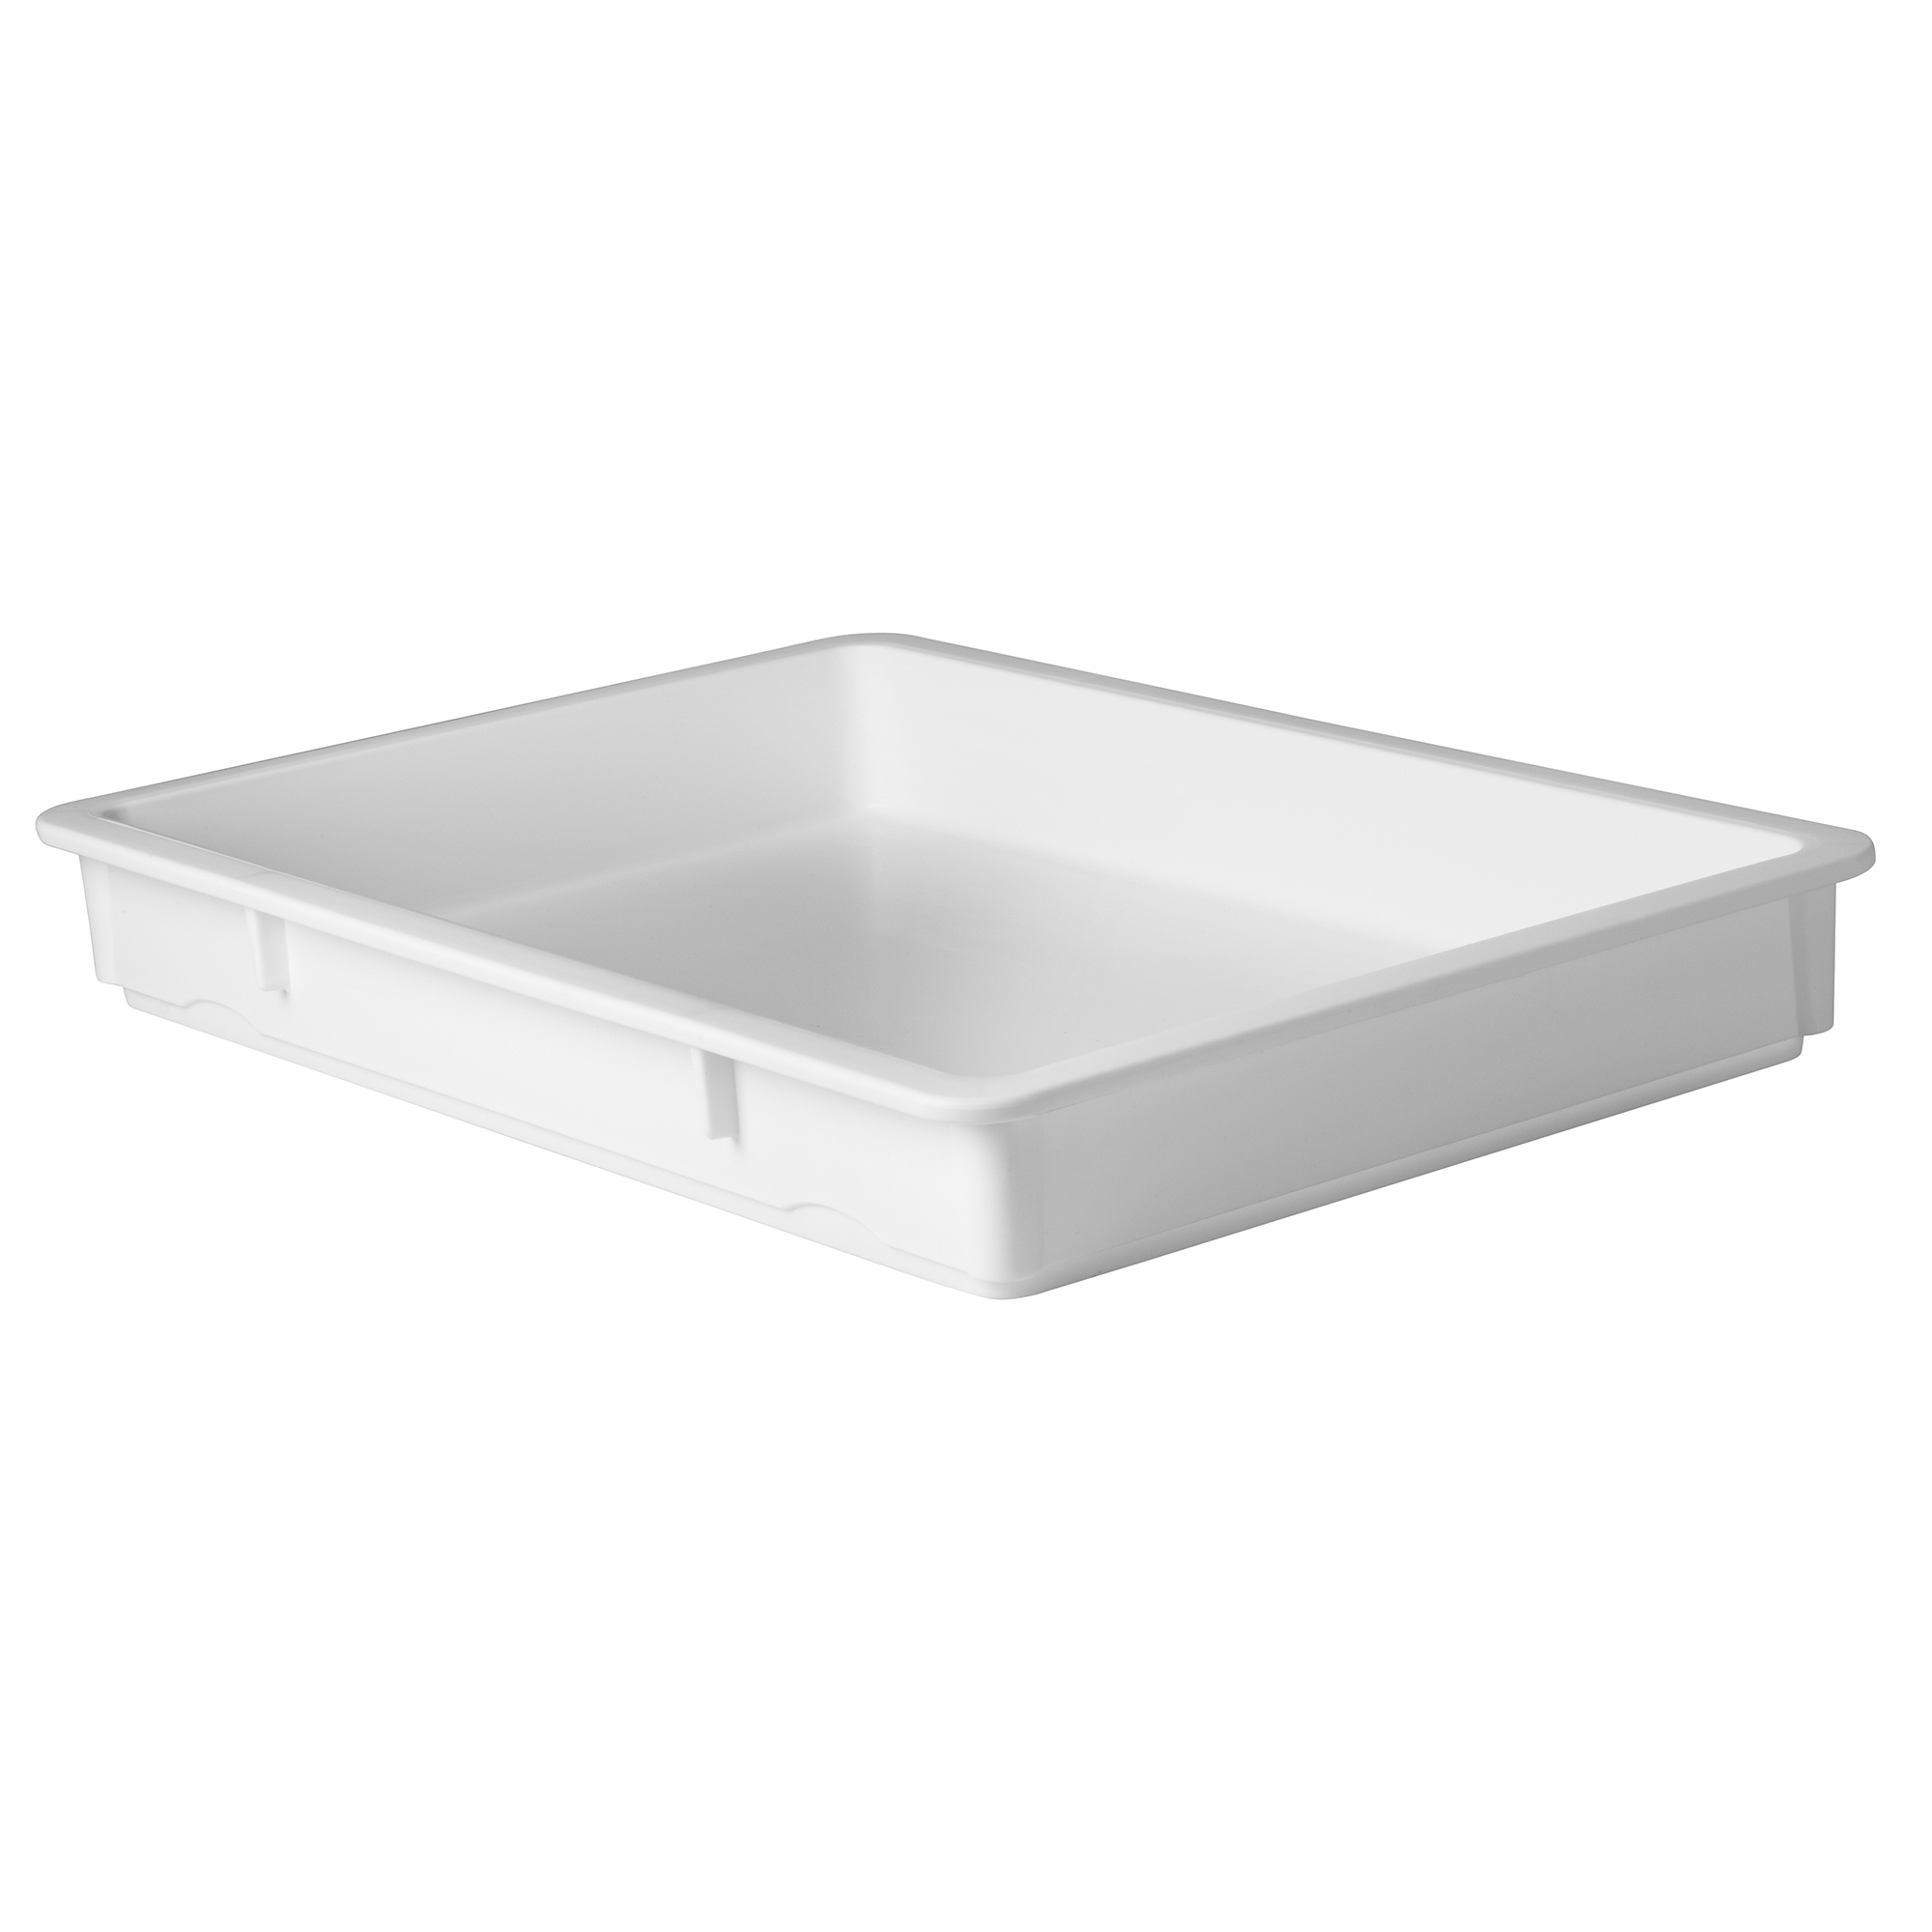 Winco PL-3N dough proofing retarding pans / boxes